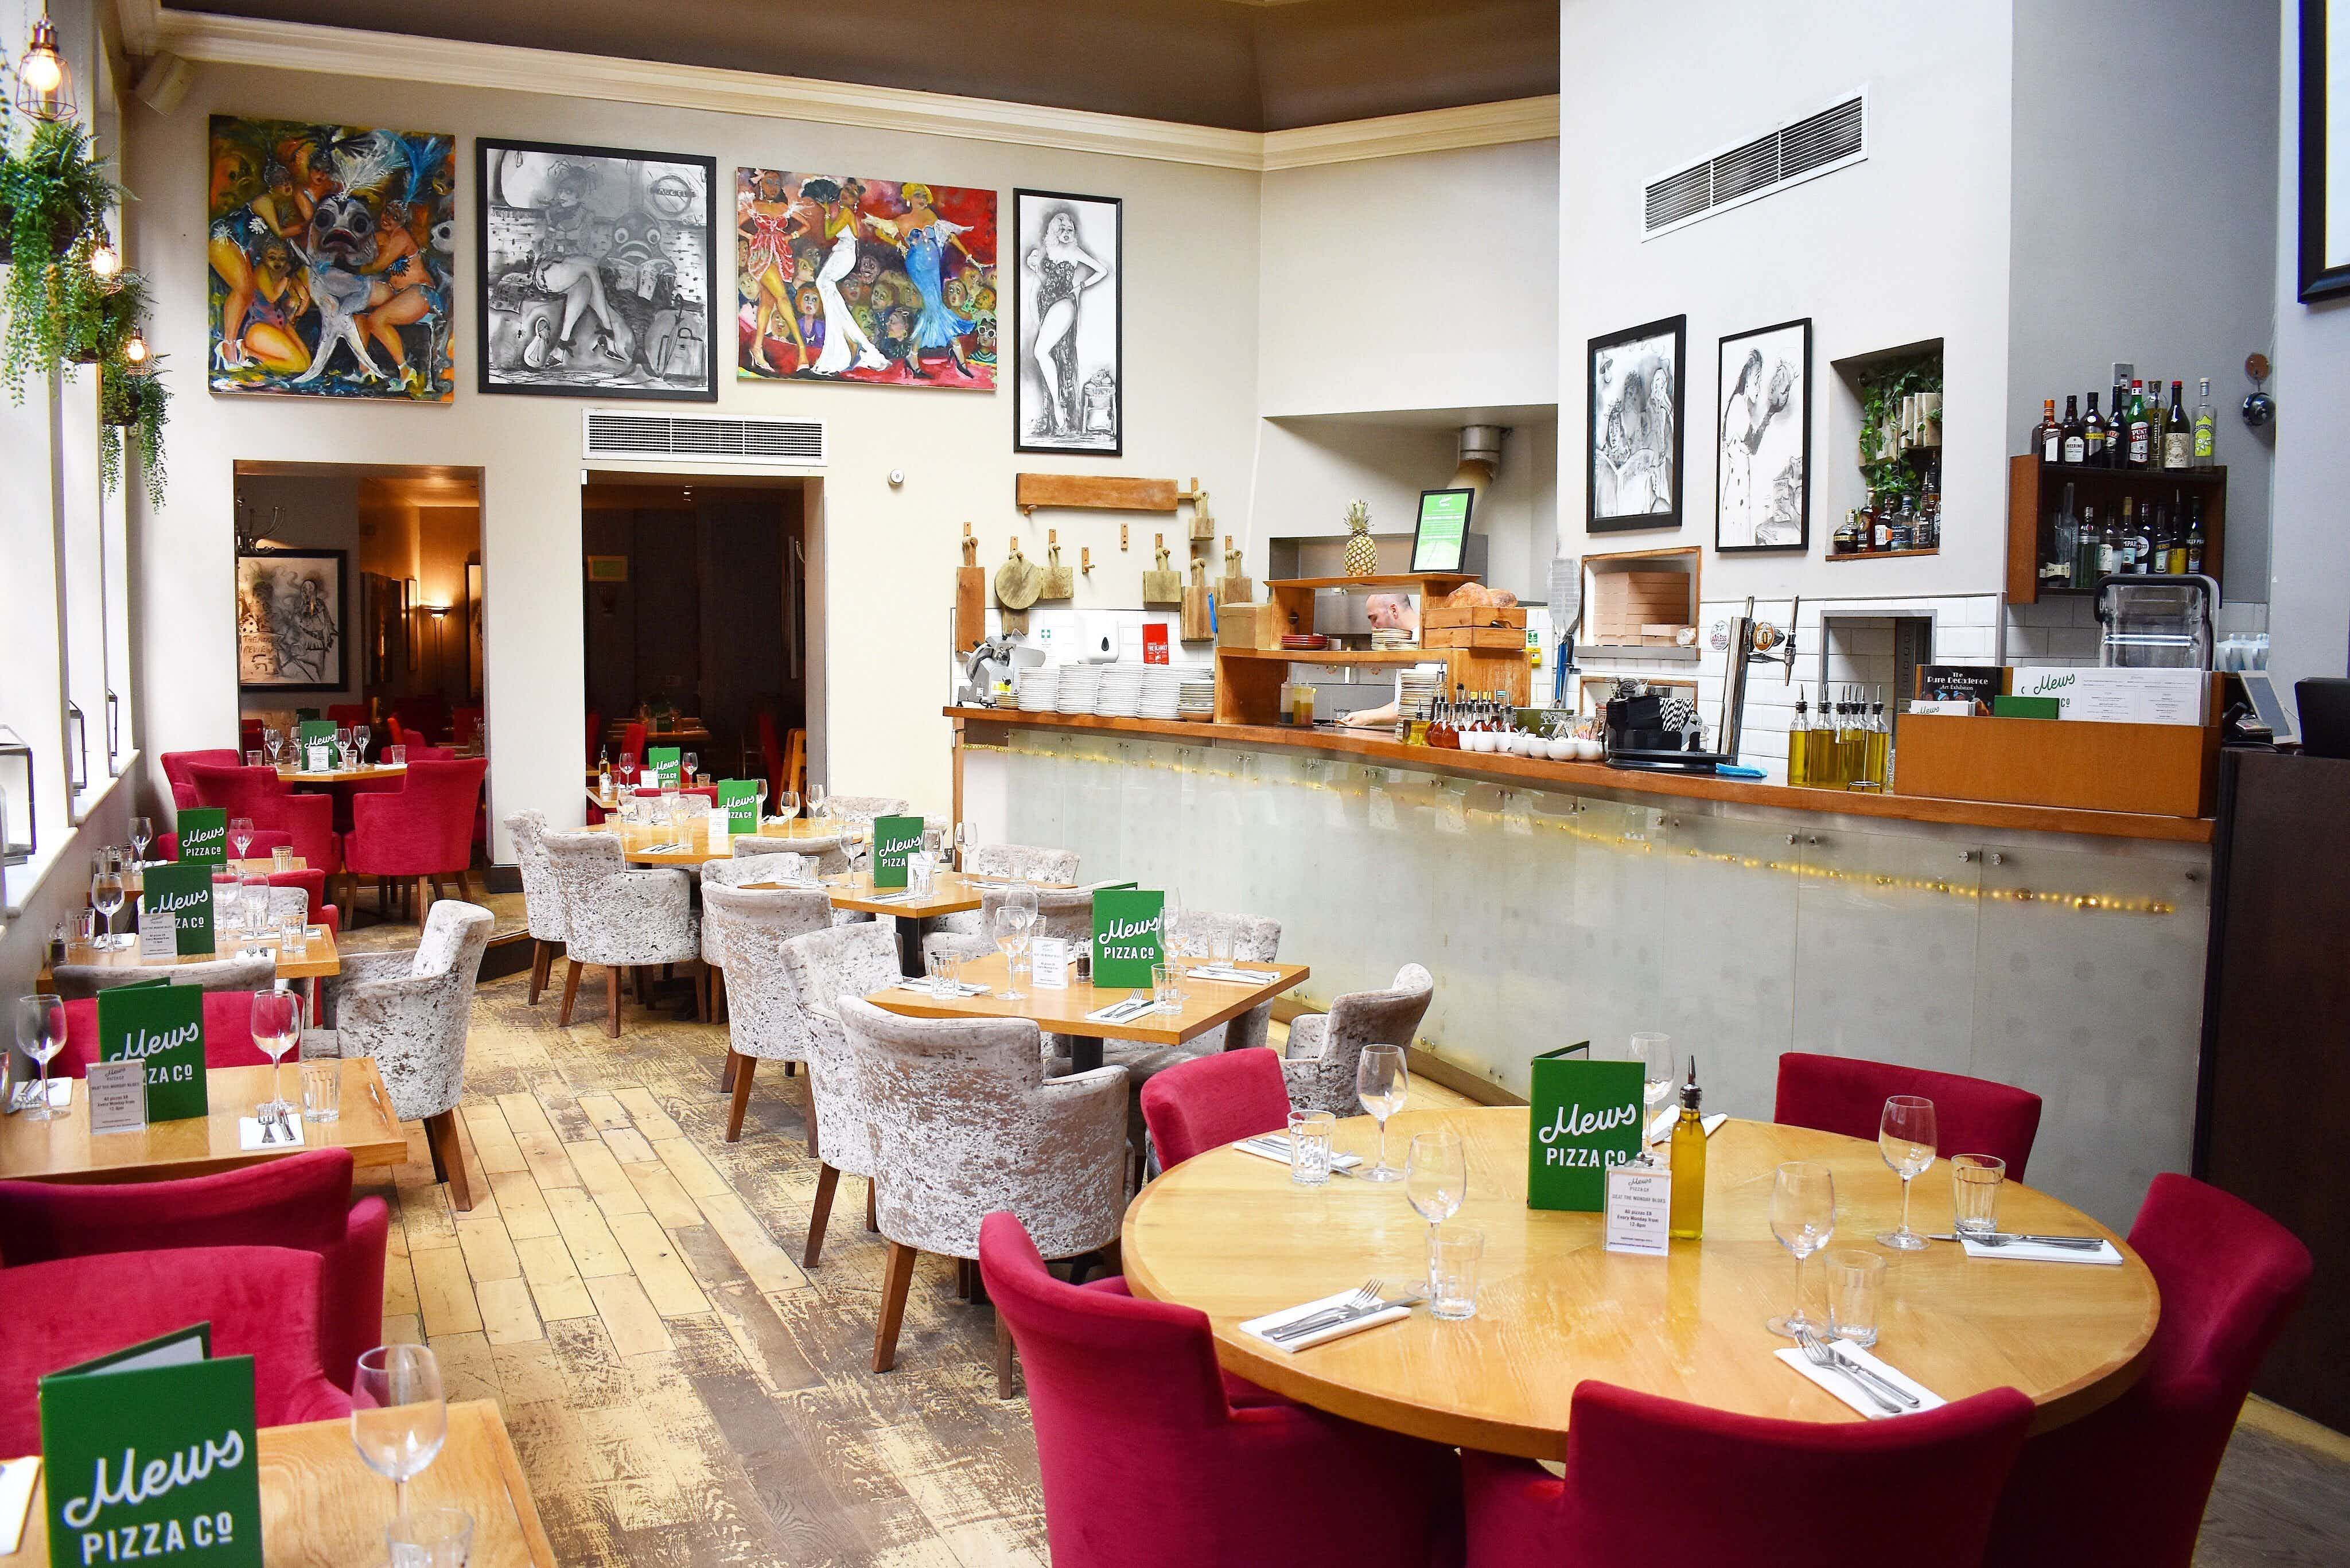 Mews Pizza Co, Mews of Mayfair